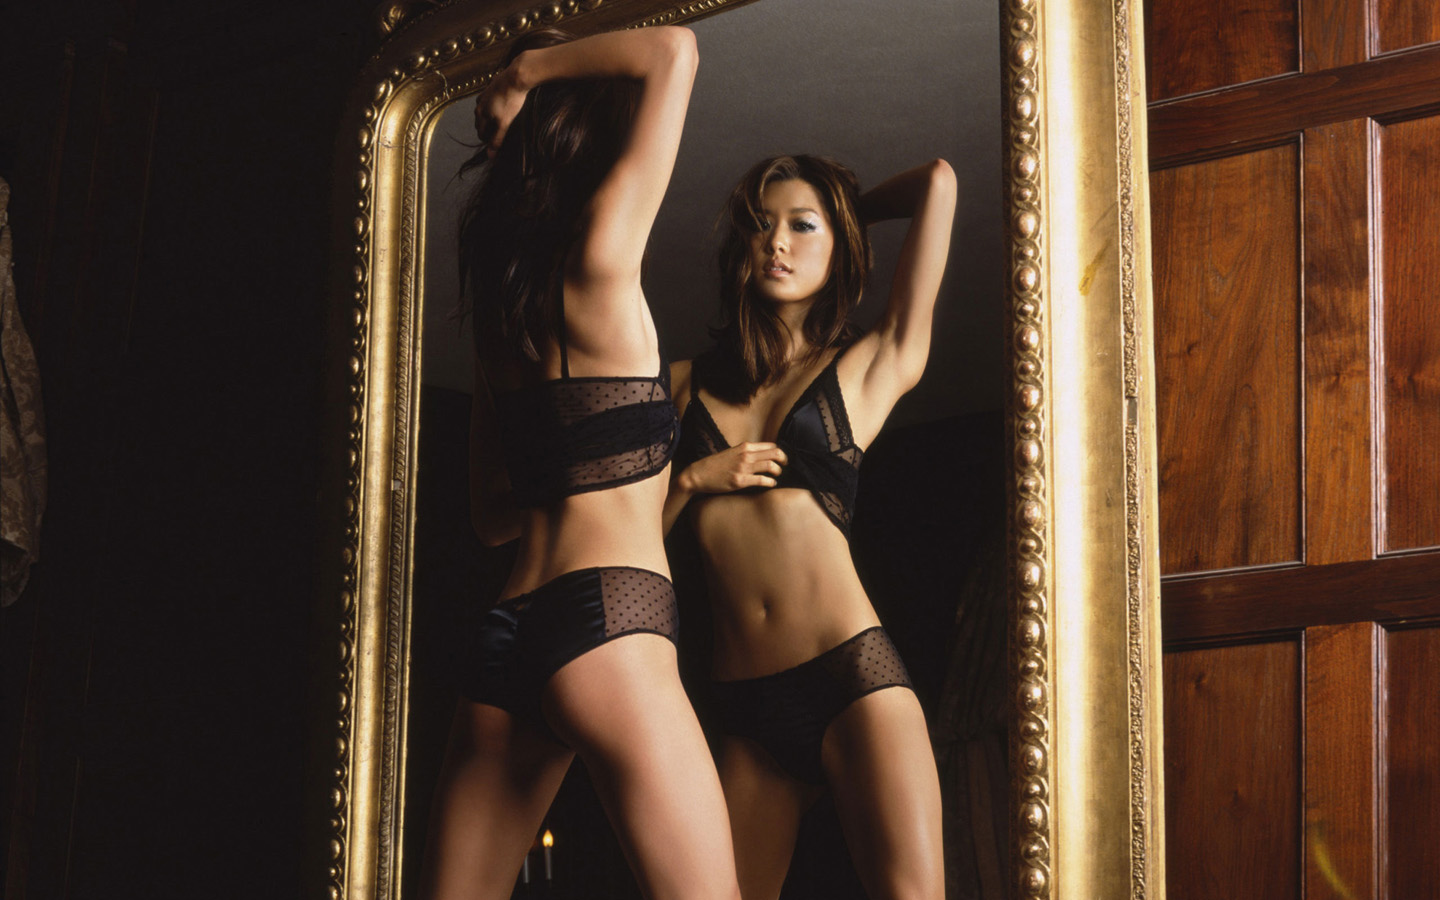 grace park hot mirror